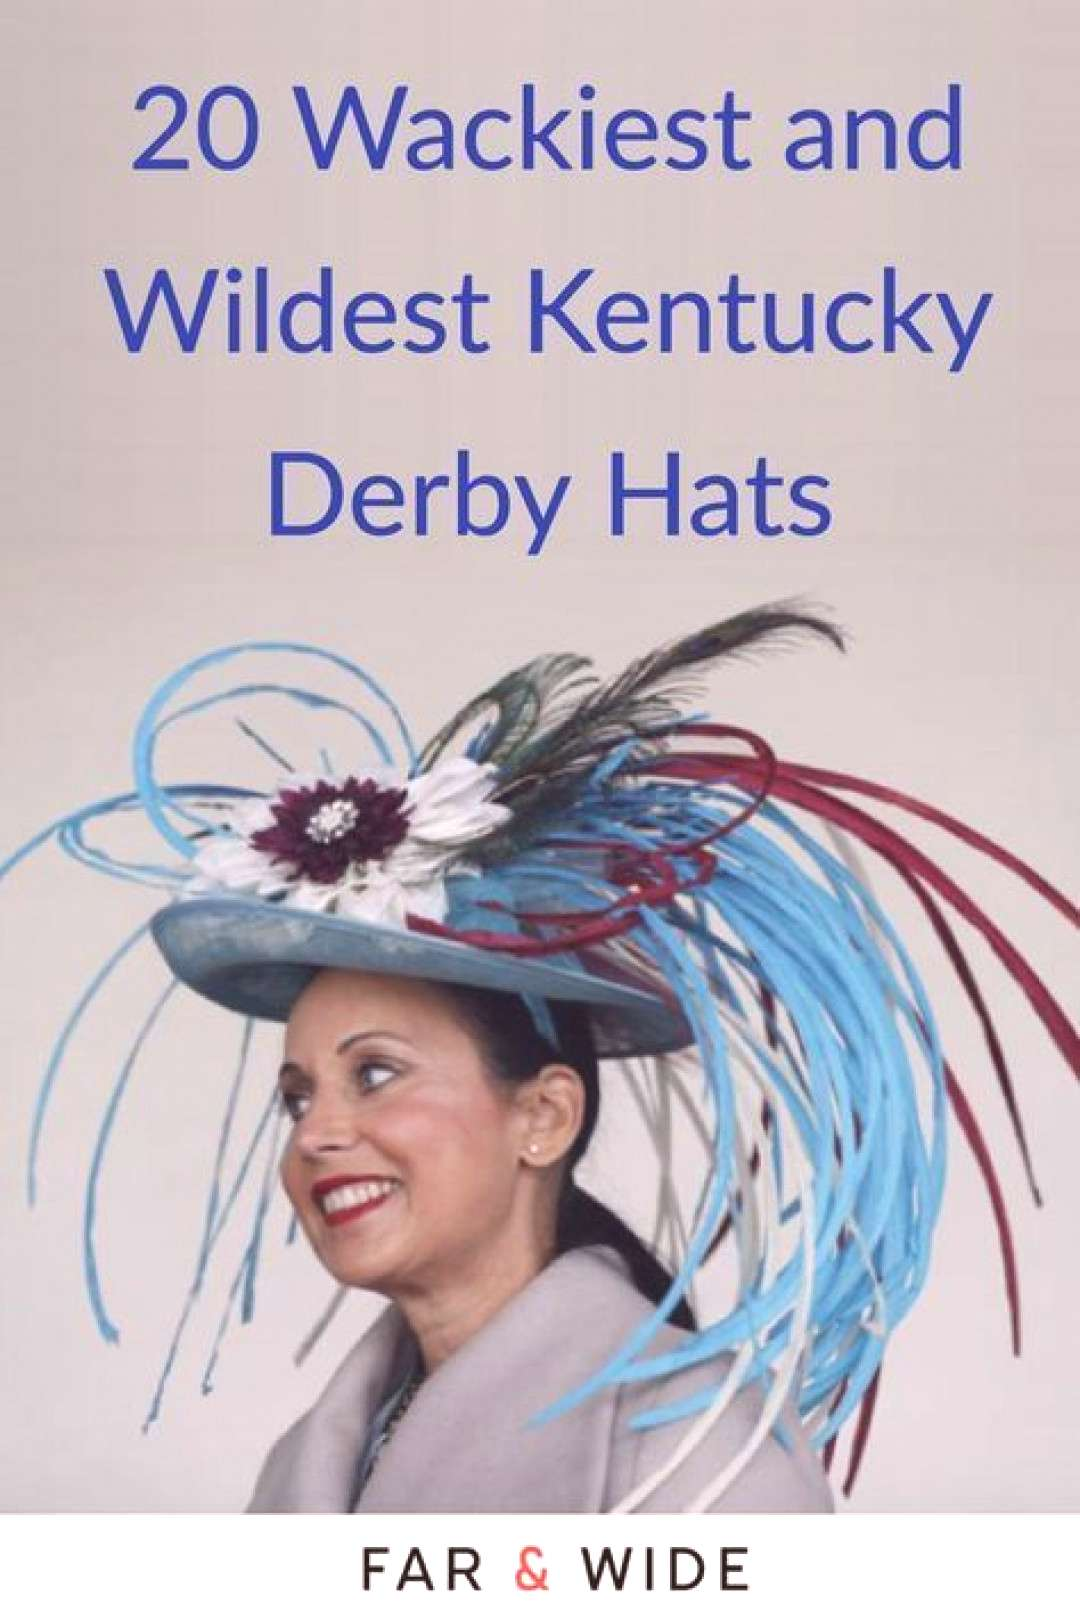 Wackiest and Wildest Kentucky Derby Hats What do birds, cocktails, pinwheels and stuffed animals ha